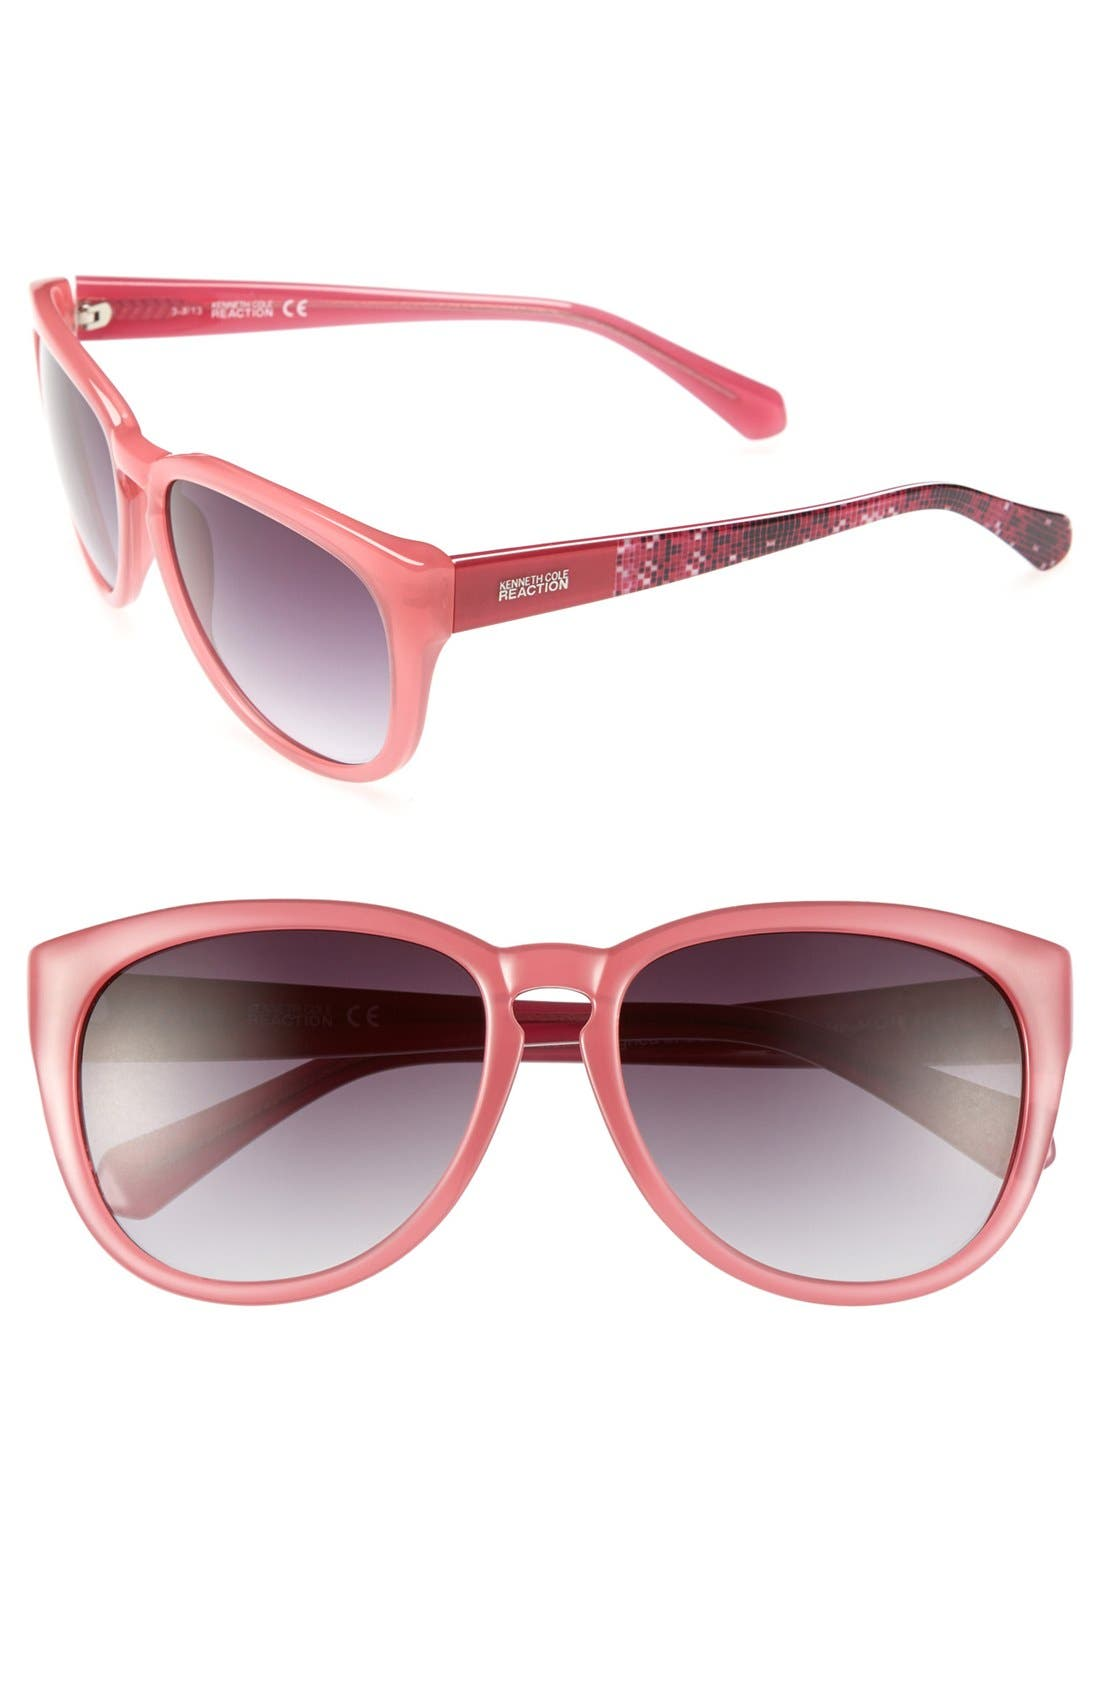 Main Image - Kenneth Cole Reaction 56mm Sunglasses